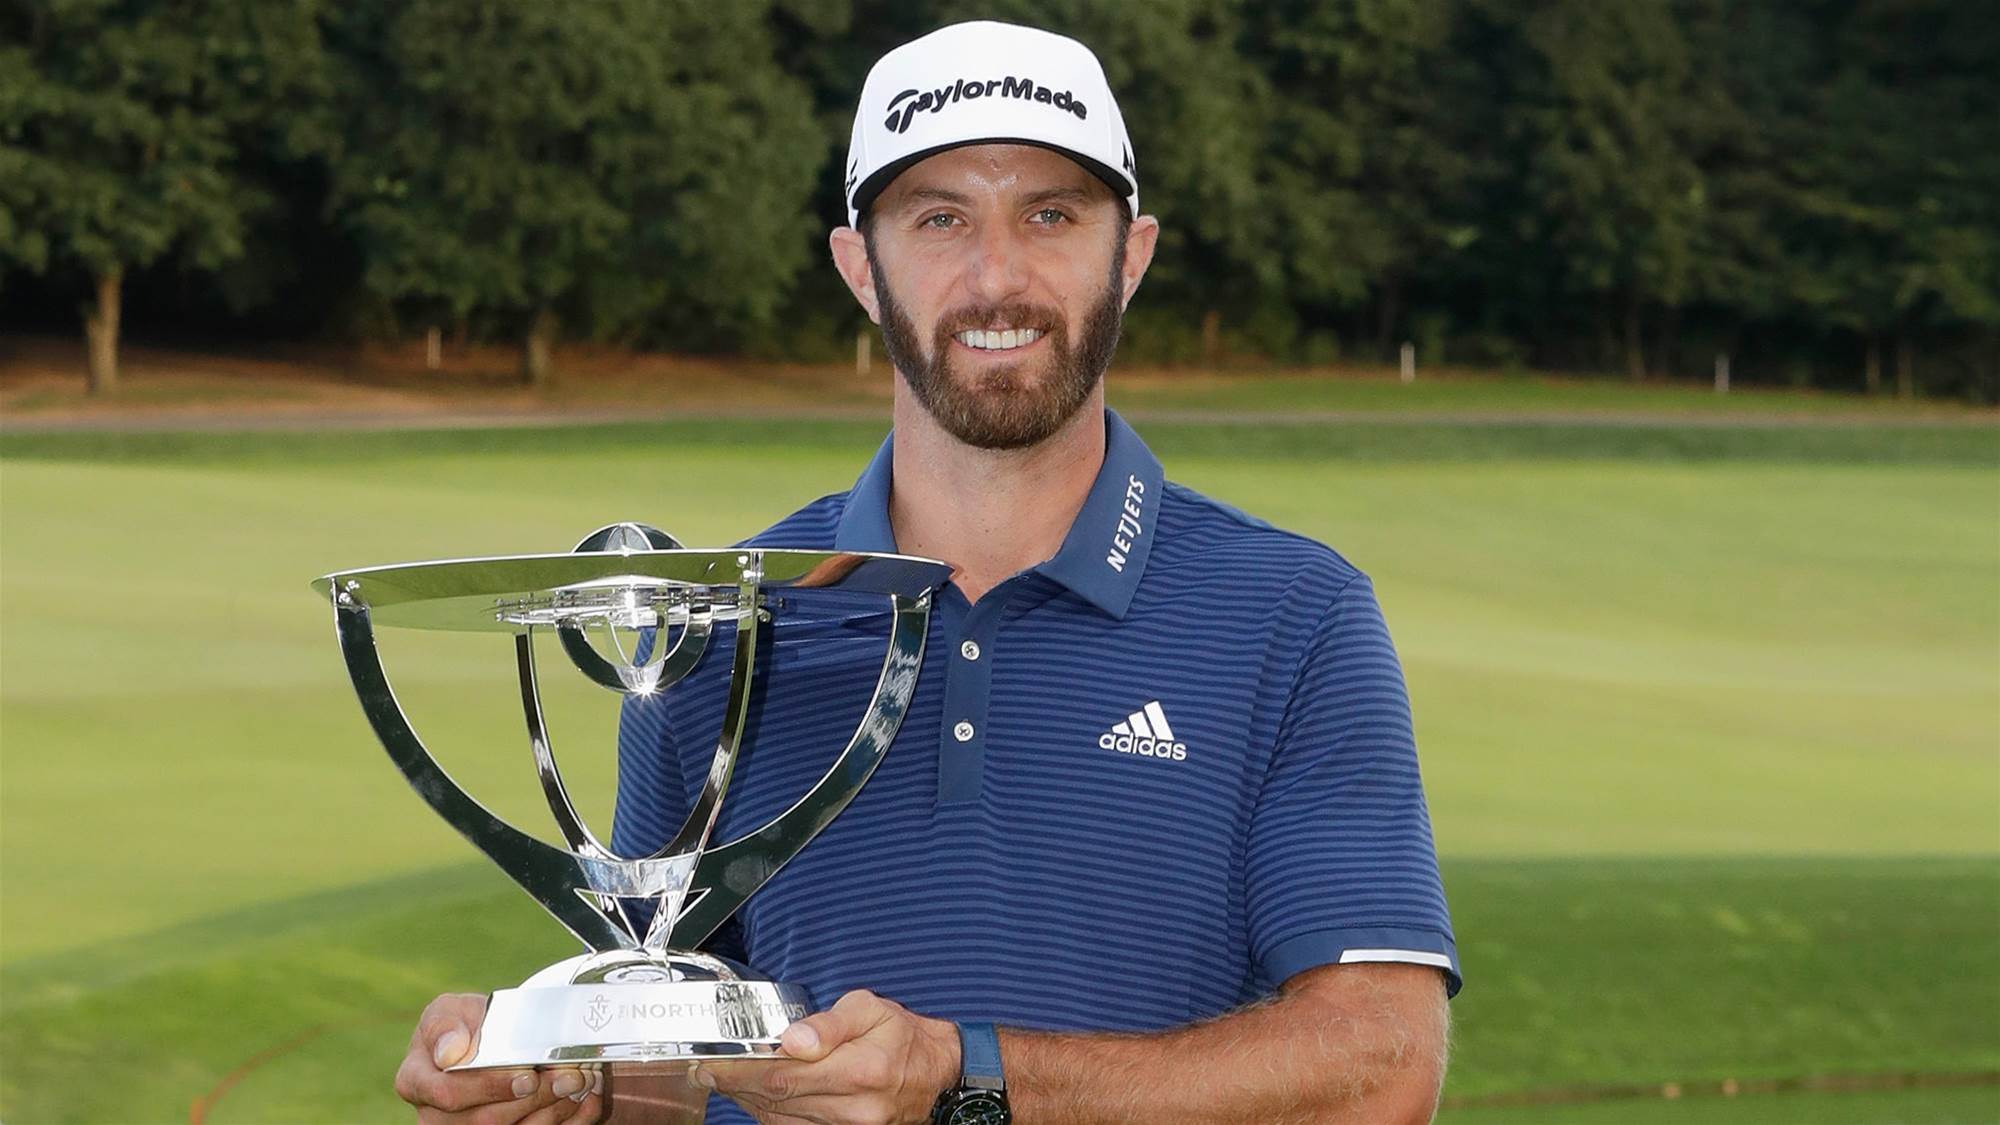 PGA TOUR: Johnson back on top